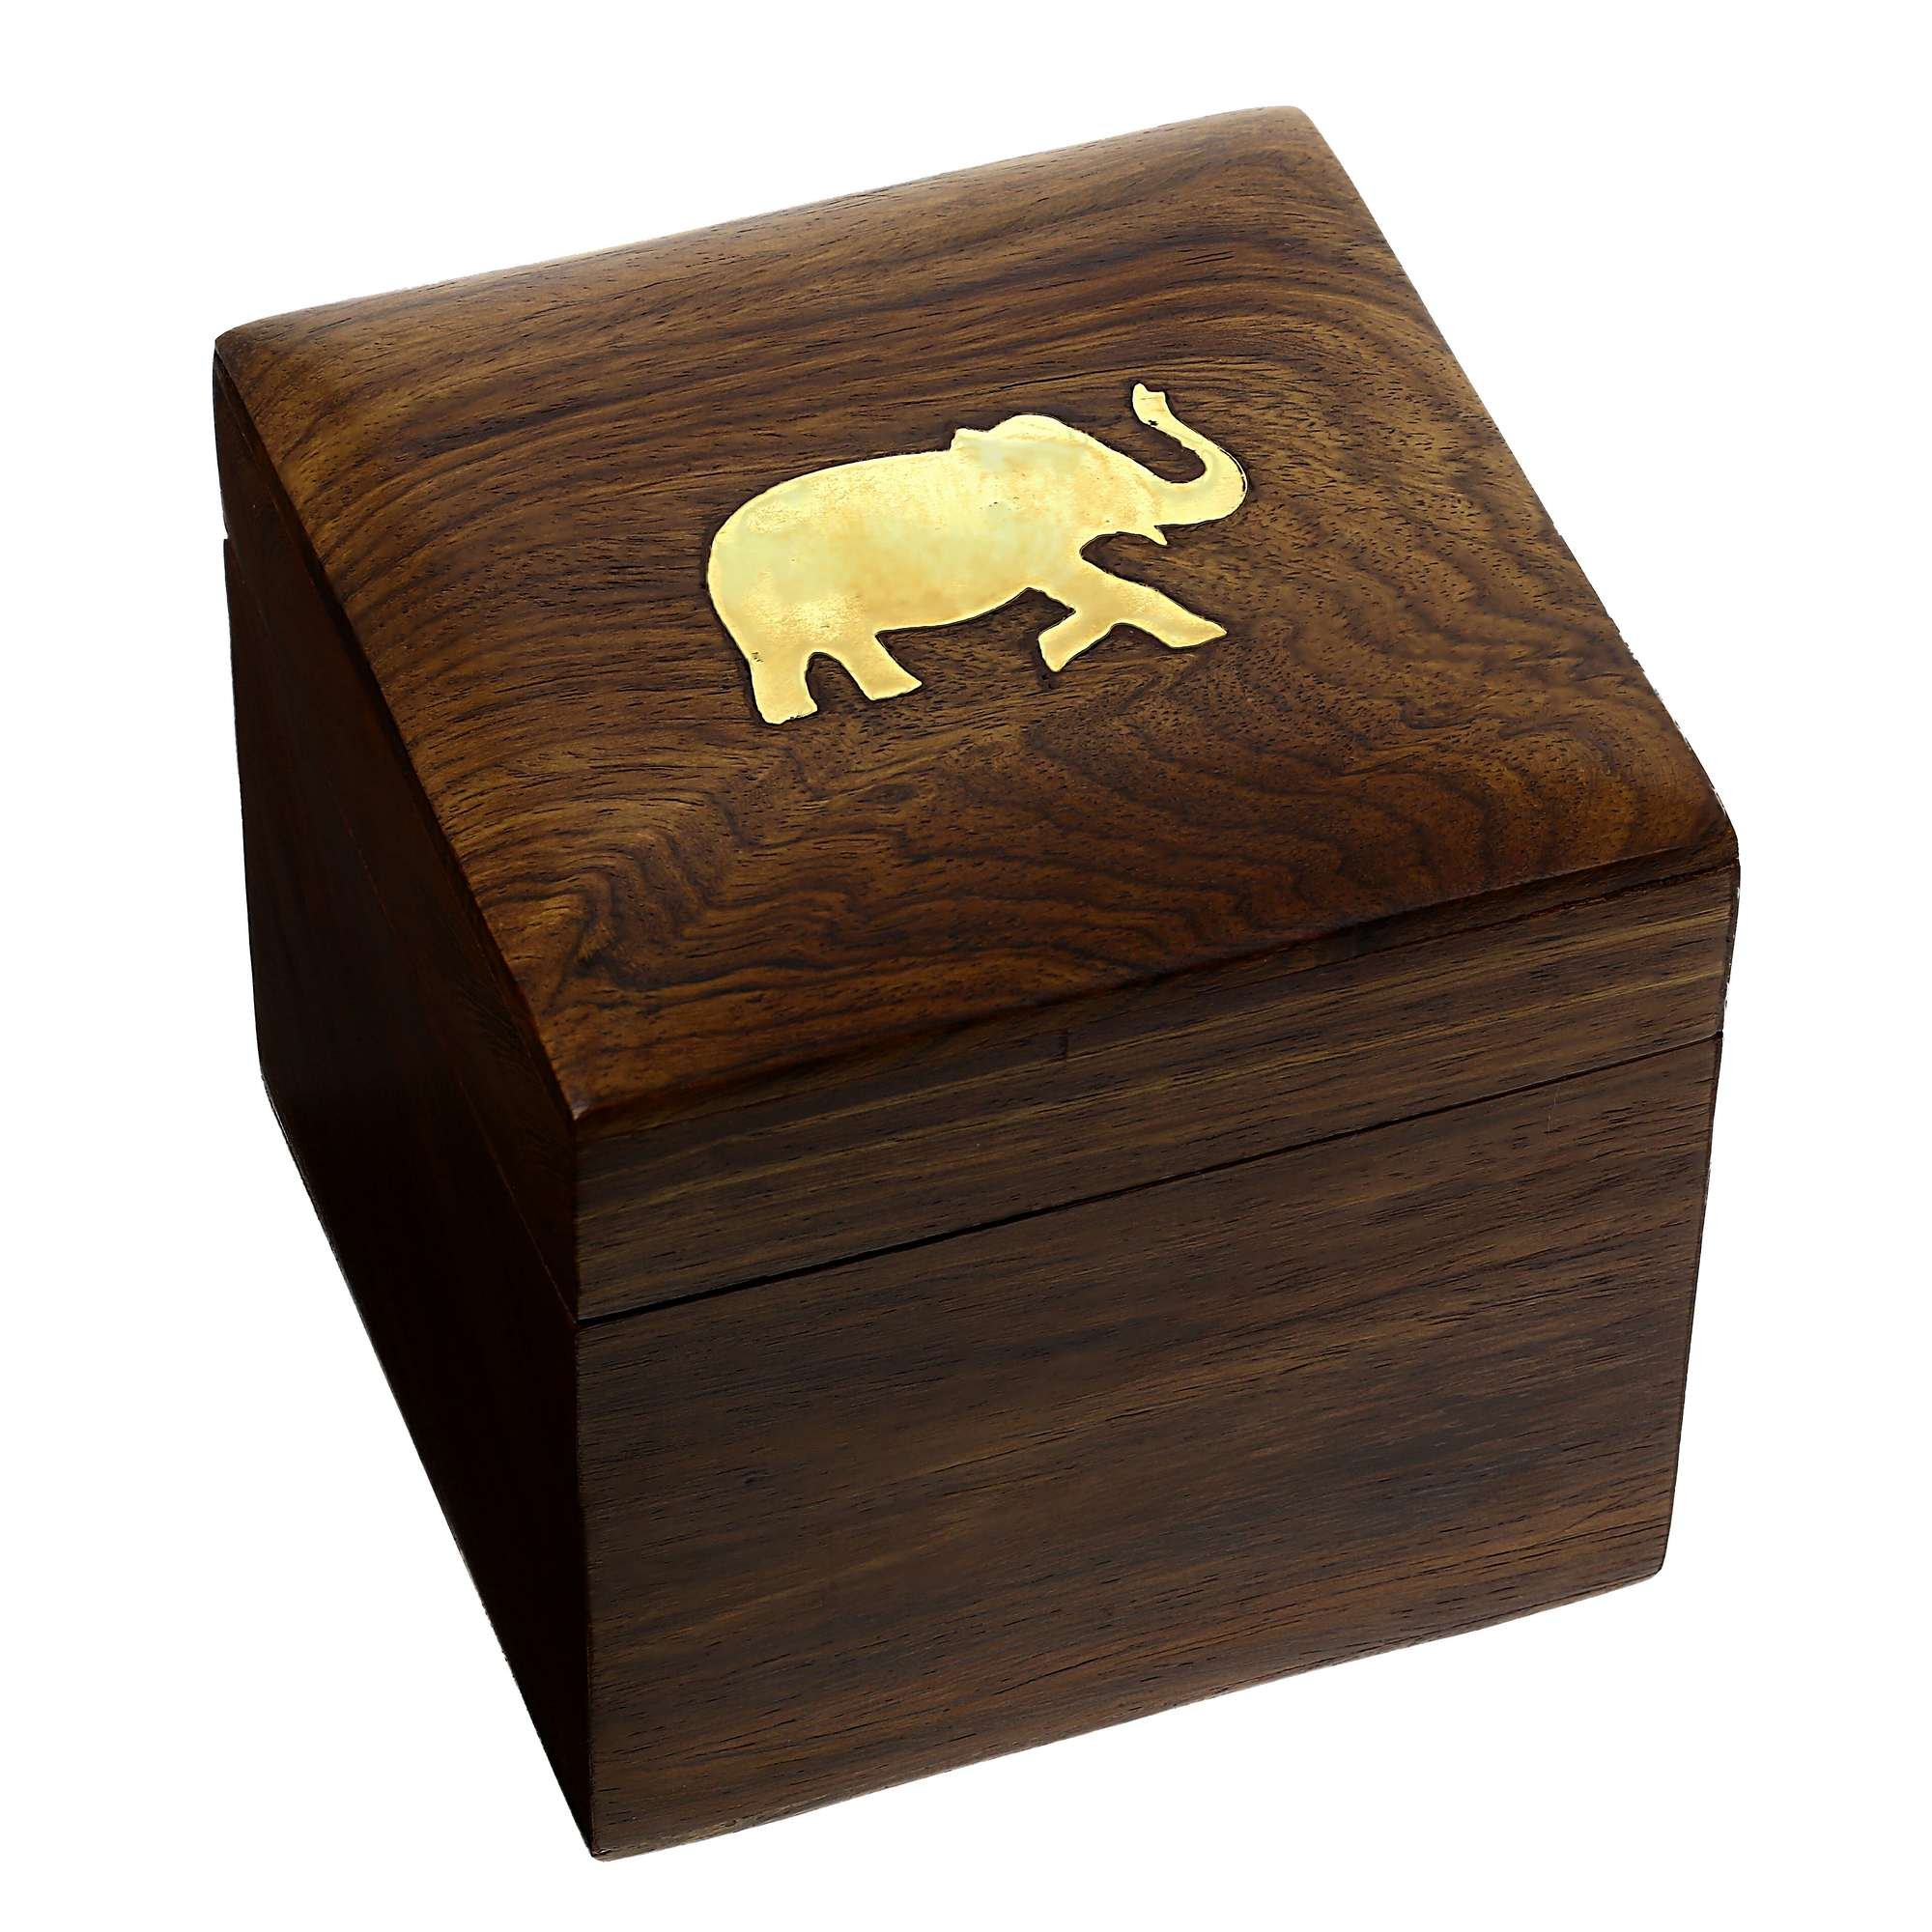 Indian Elephant Jewelry Holder - 4 x 4 x 3.5 Inch Small Wood Box - Jewelry Boxes for Necklaces - Gifts